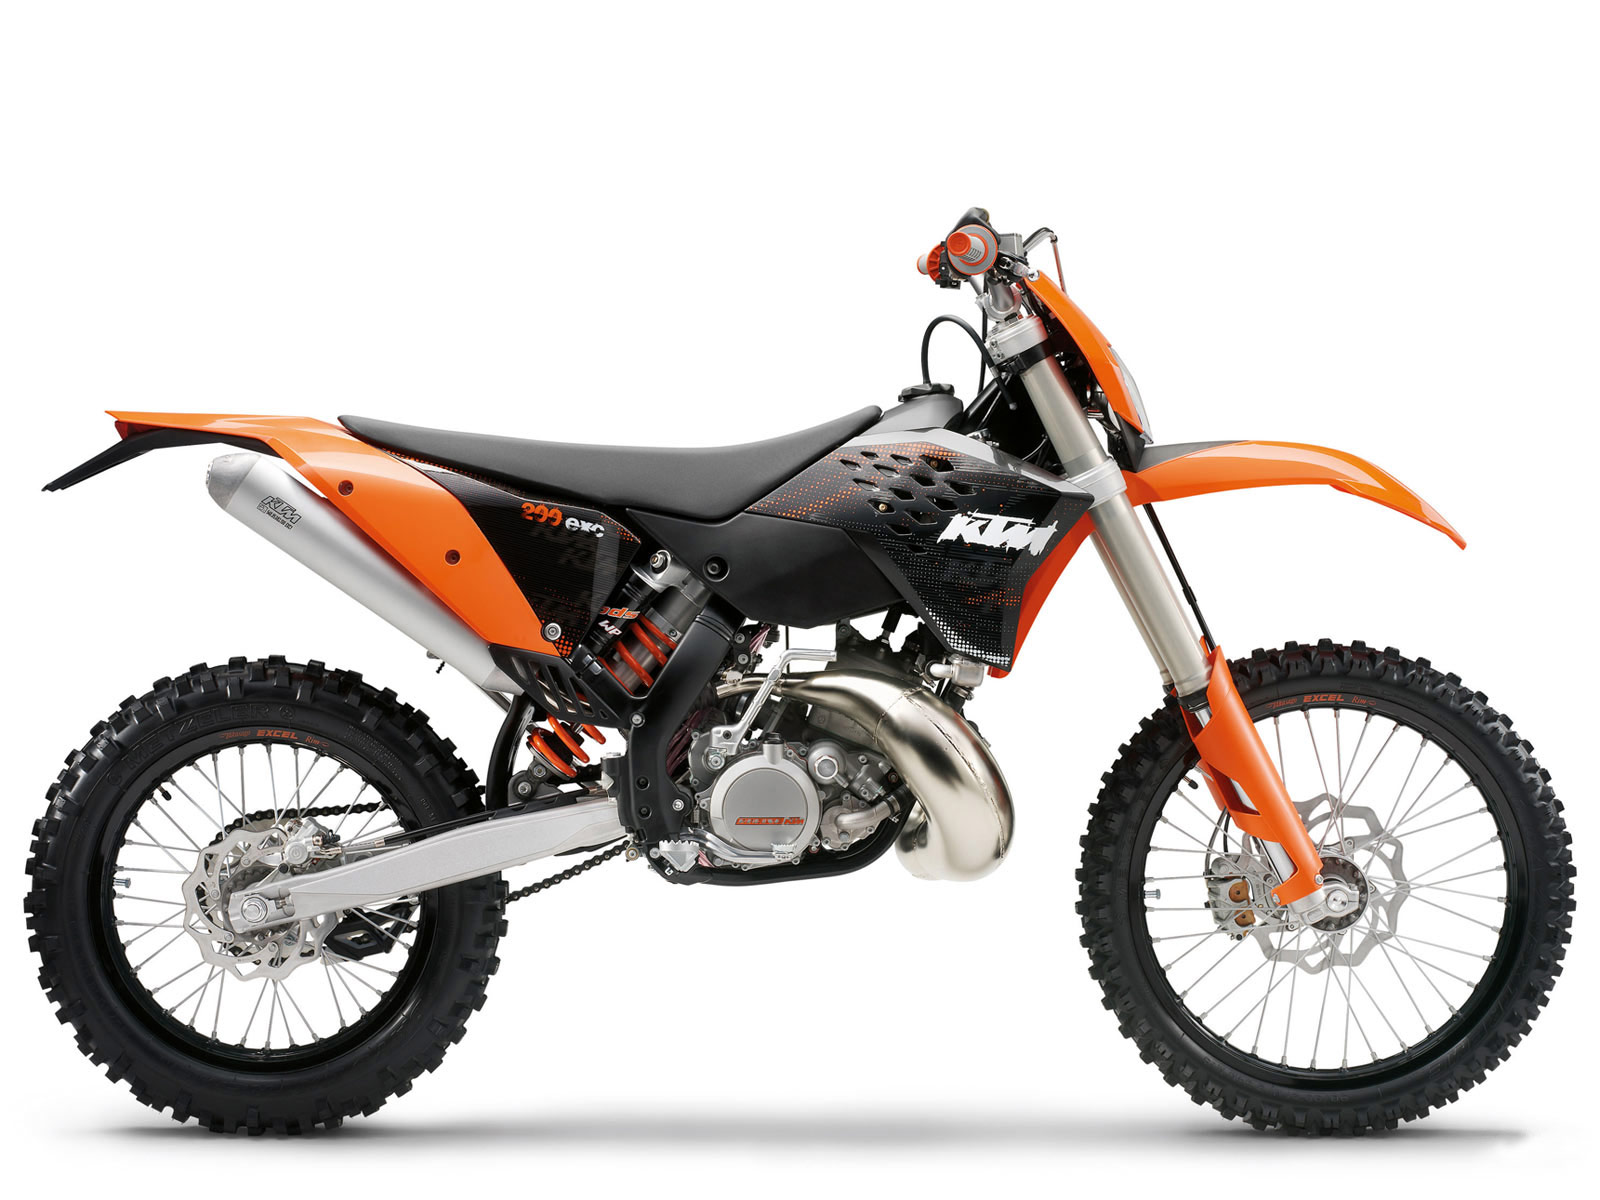 2009 Ktm 200exc Motorcycle Insurance Info Wallpaper